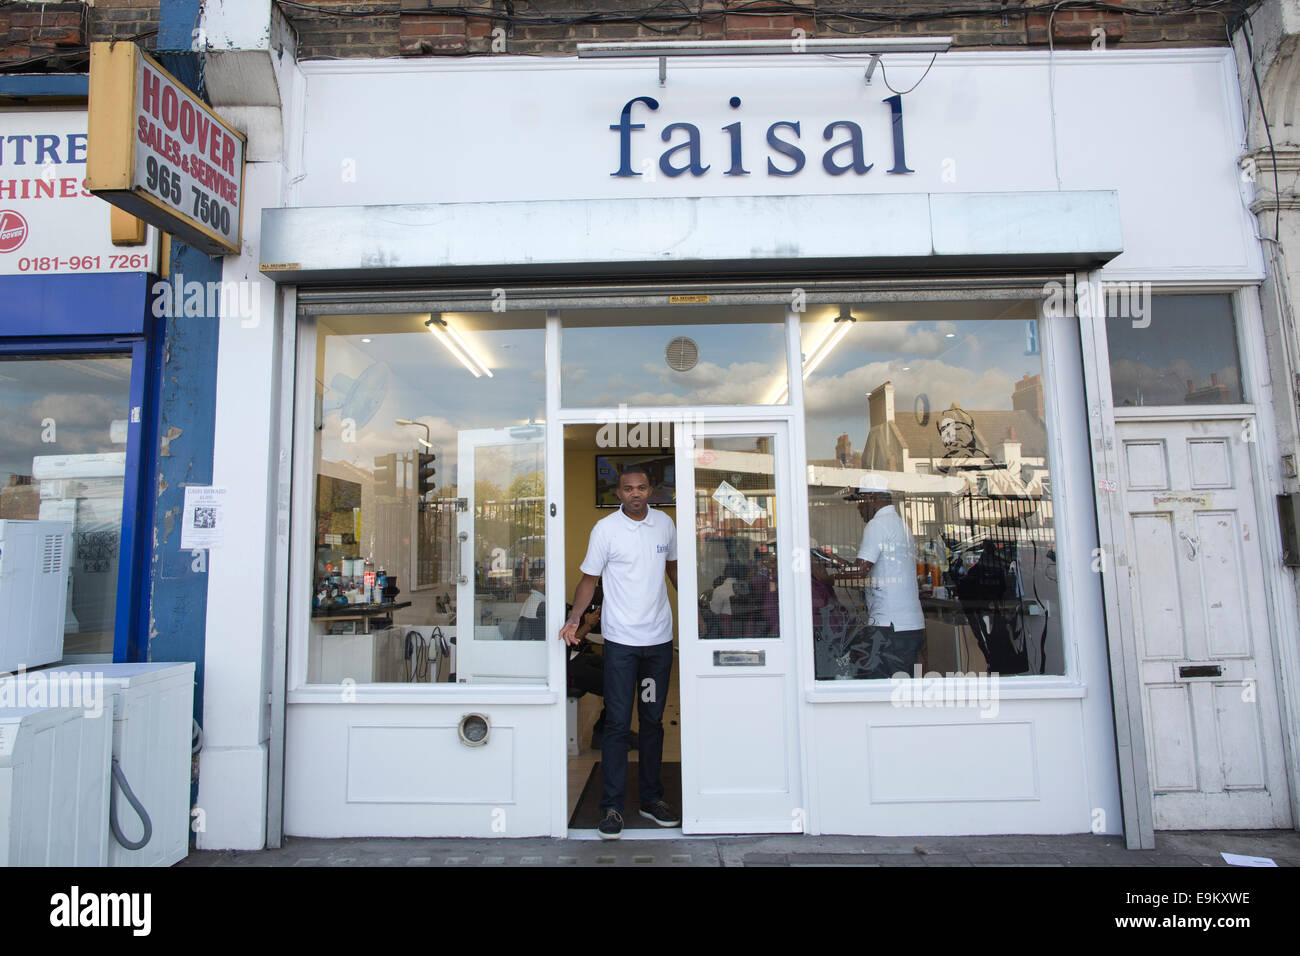 Faisal hairdressers, Harlesden, Northwest London, UK - Stock Image